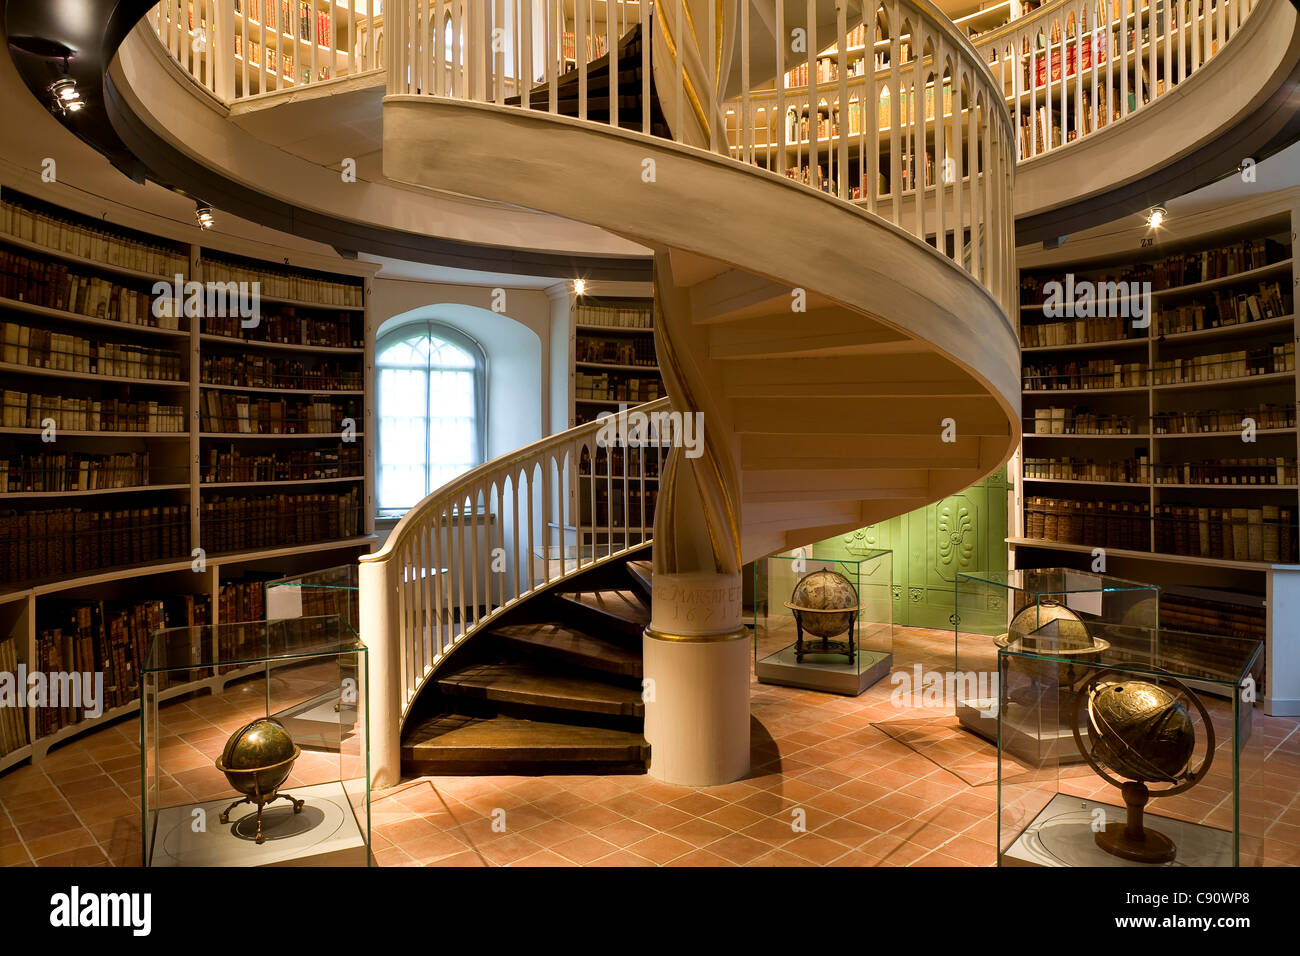 Charmant Spiral Stairs Library Stock Photos U0026 Spiral Stairs Library ...